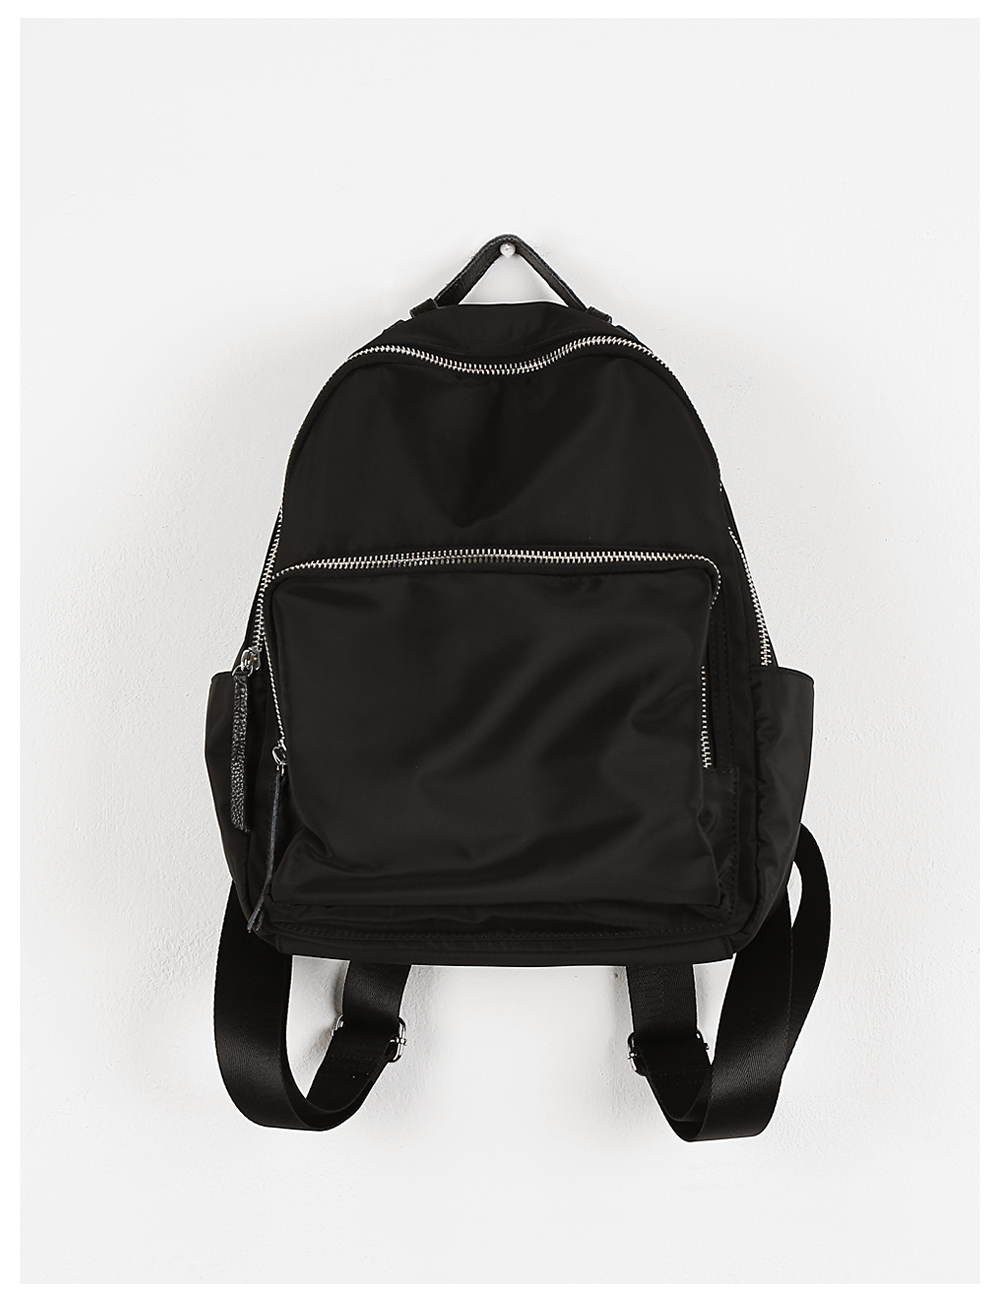 Glam black leather back pack